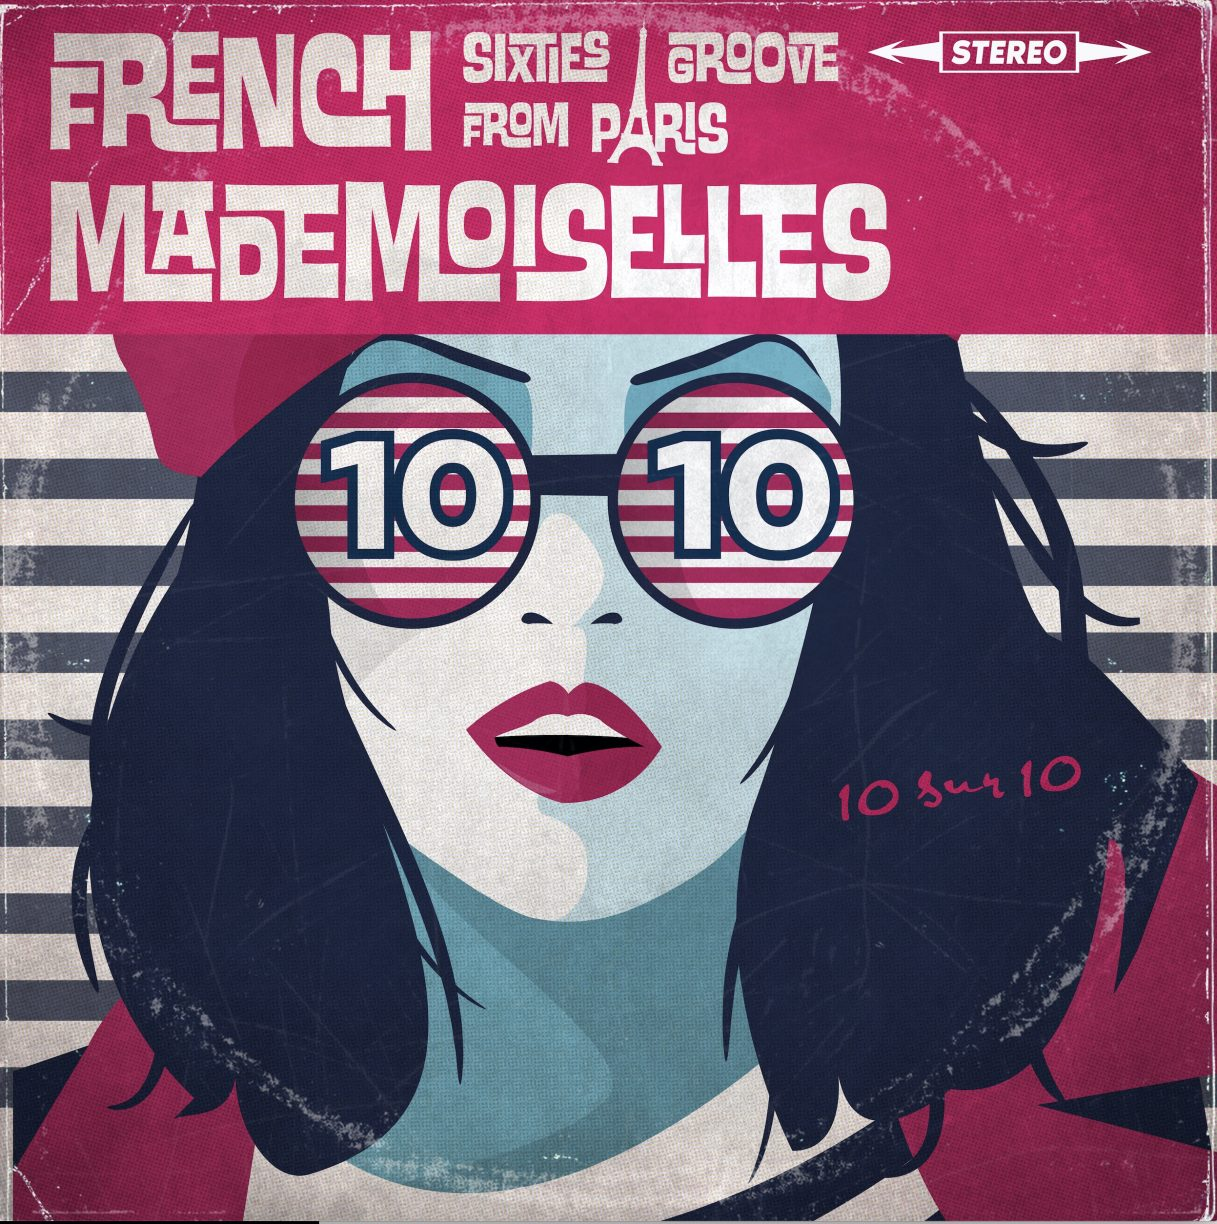 French Mademoiselles